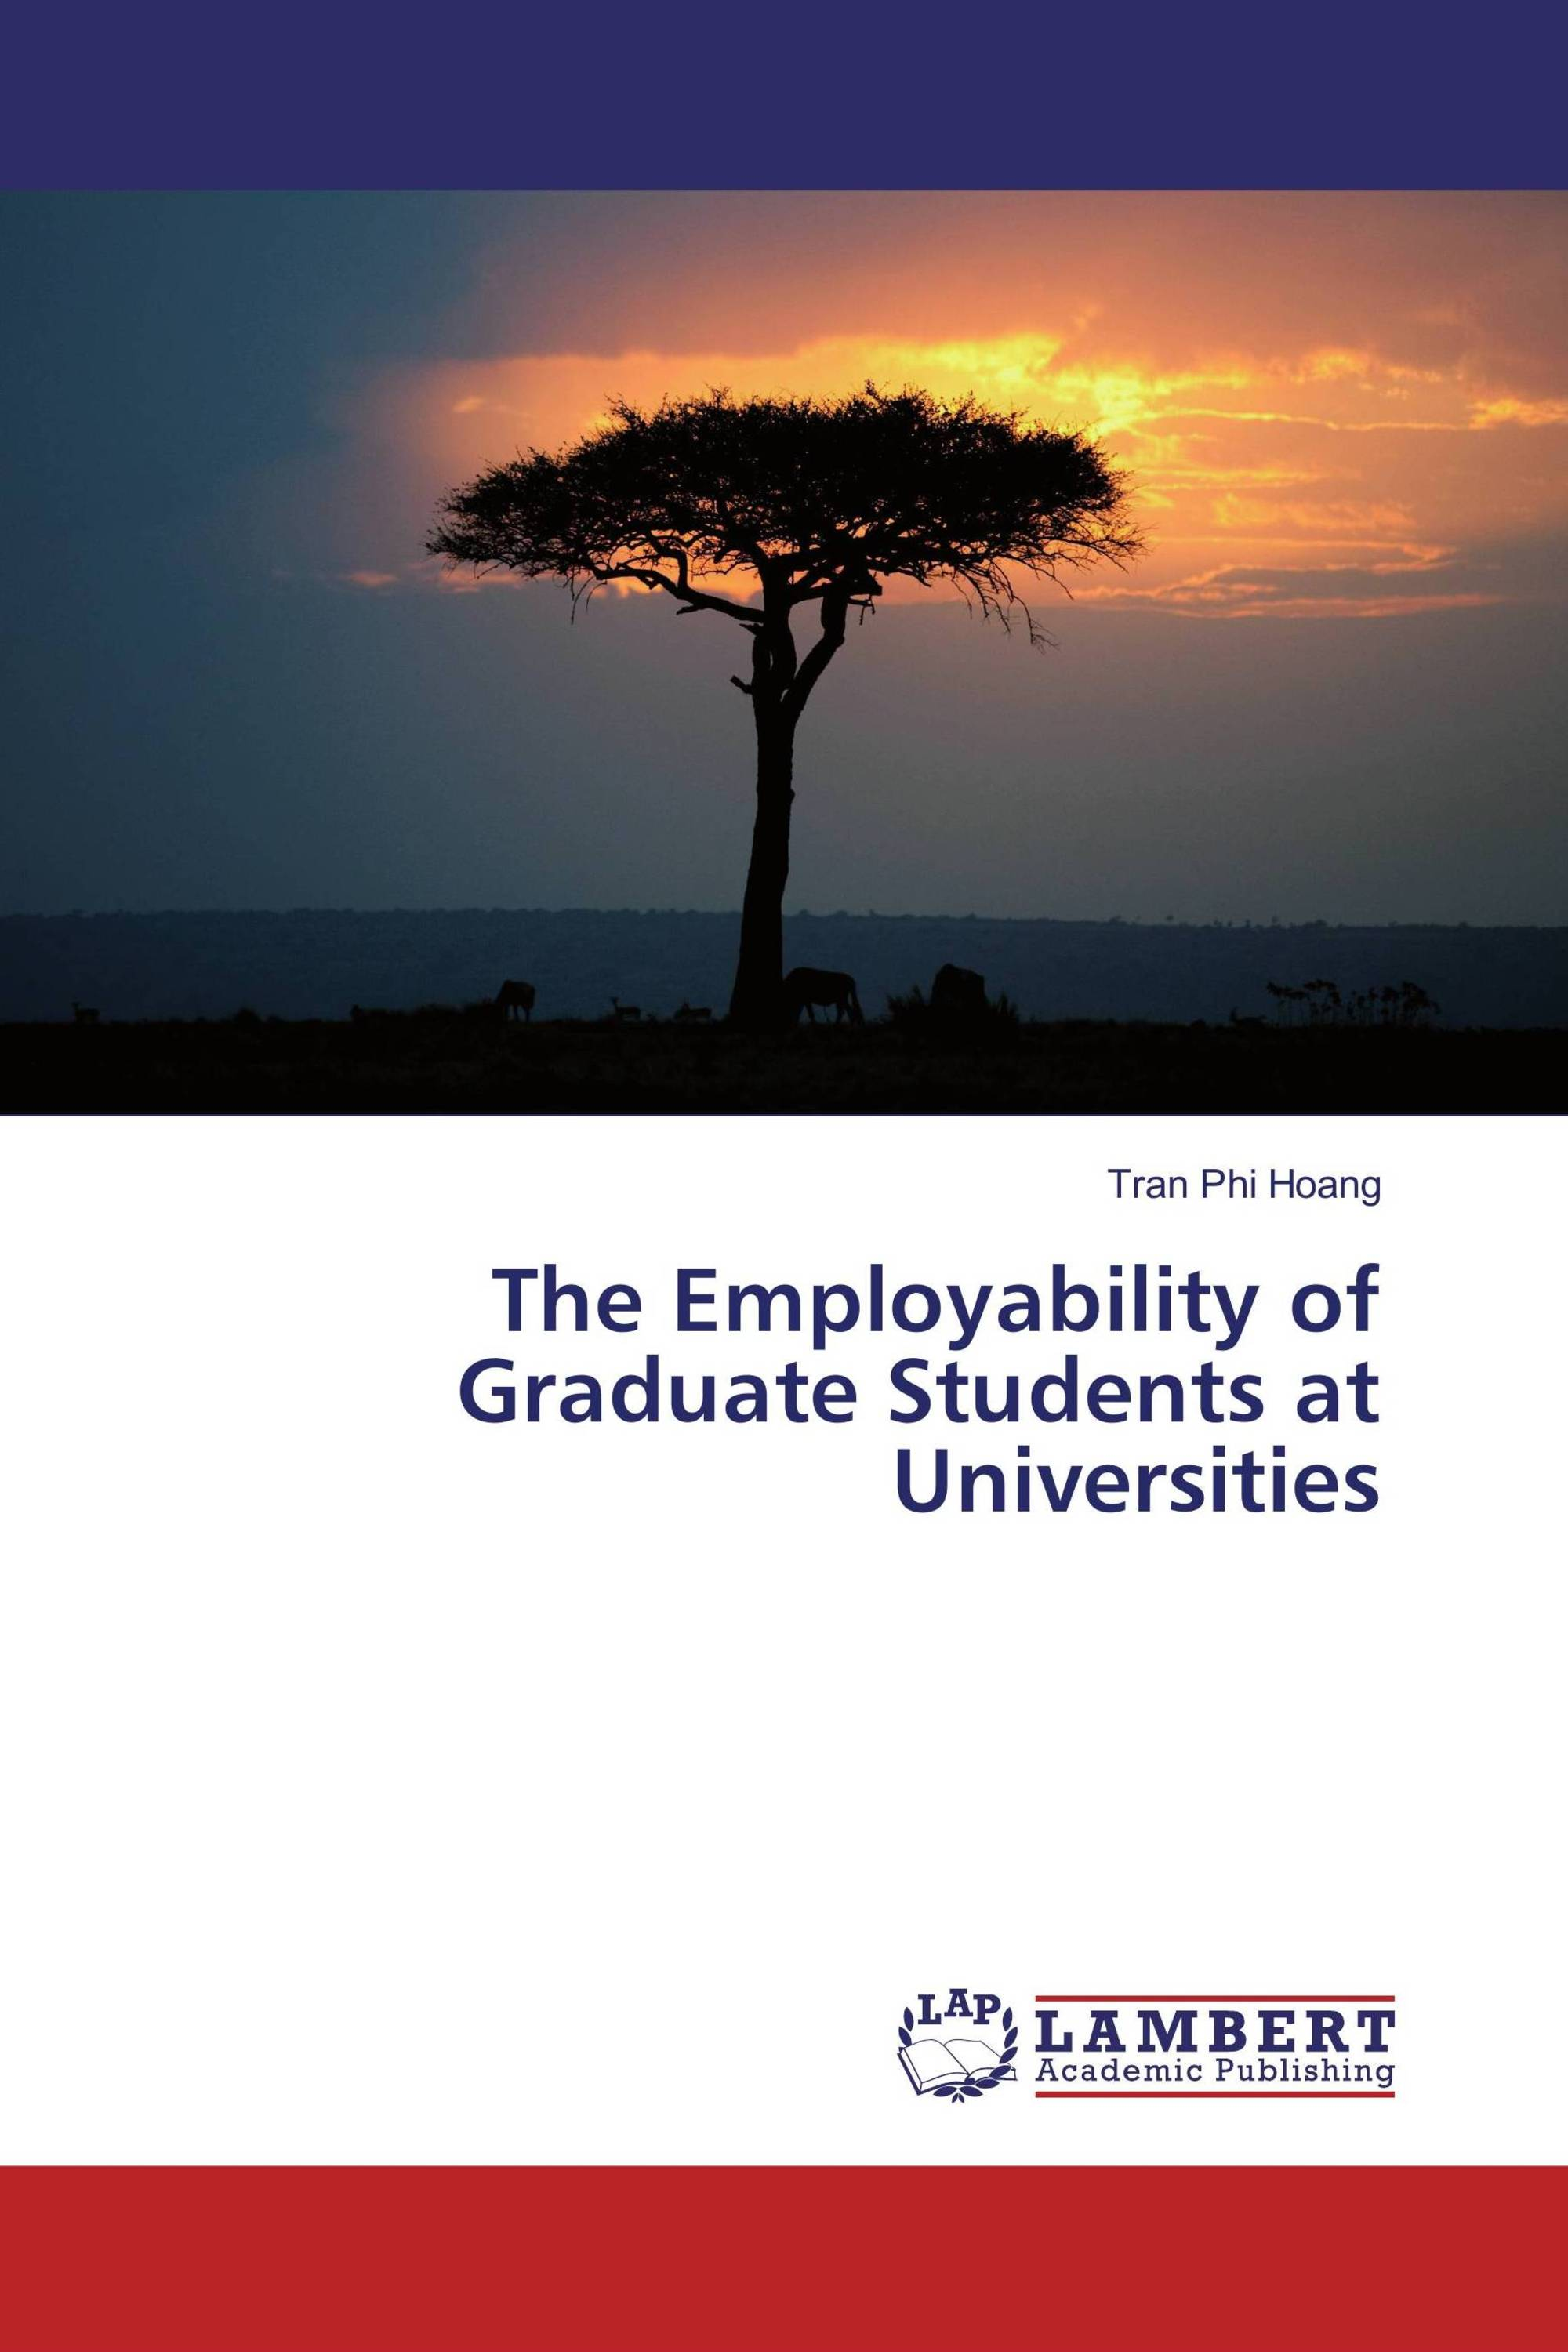 employability of graduates thesis Employability of graduates and higher education management employability of graduates and higher education management systems (final report of dehems project) edited.